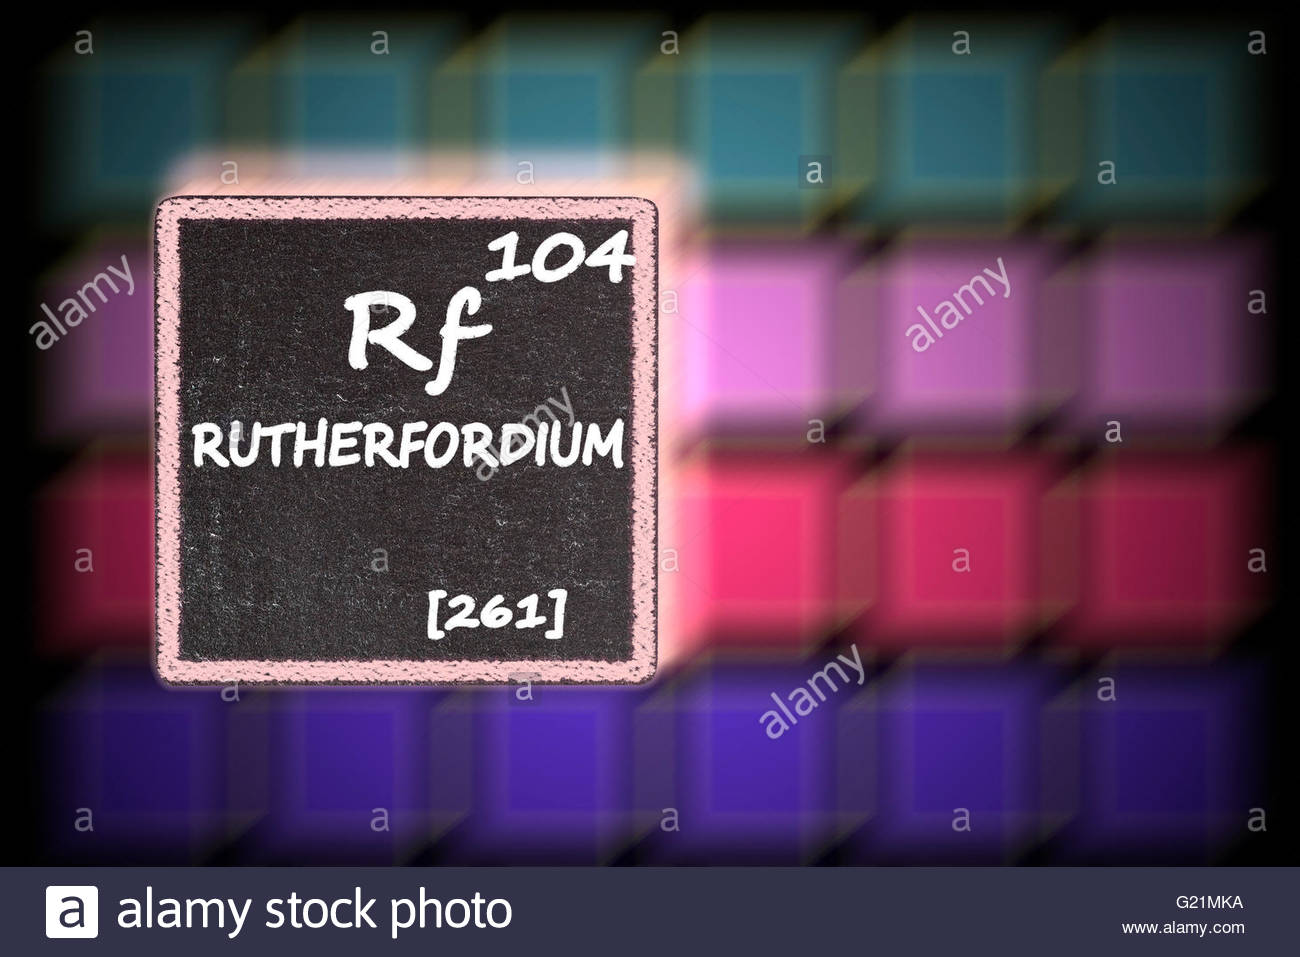 Rutherfordium  - details from the periodic table Stock Photo